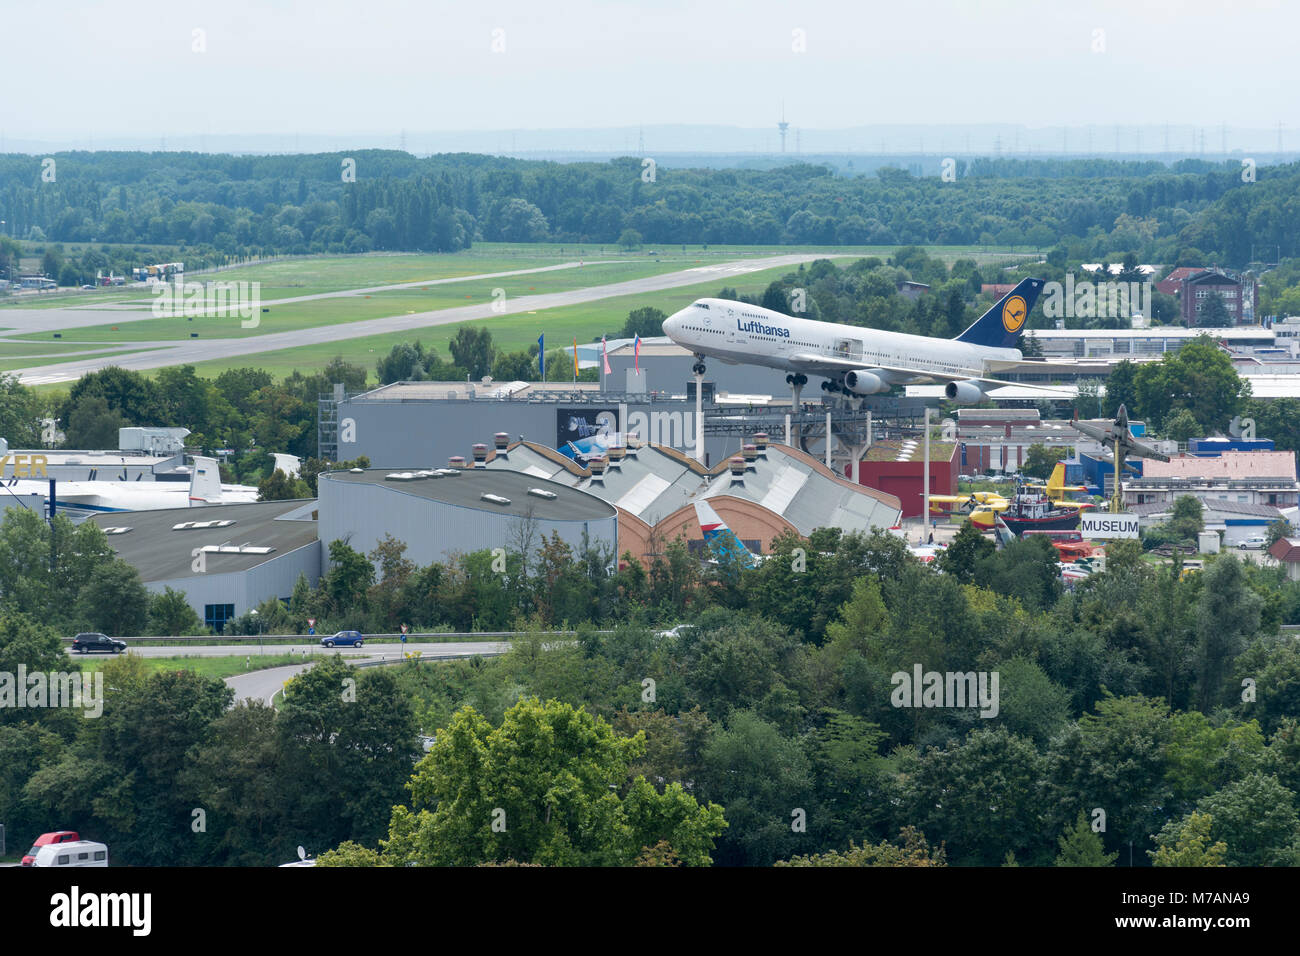 Speyer, view from the cathedral to the Technik Museum, jumbo jet of Lufthansa - Stock Image